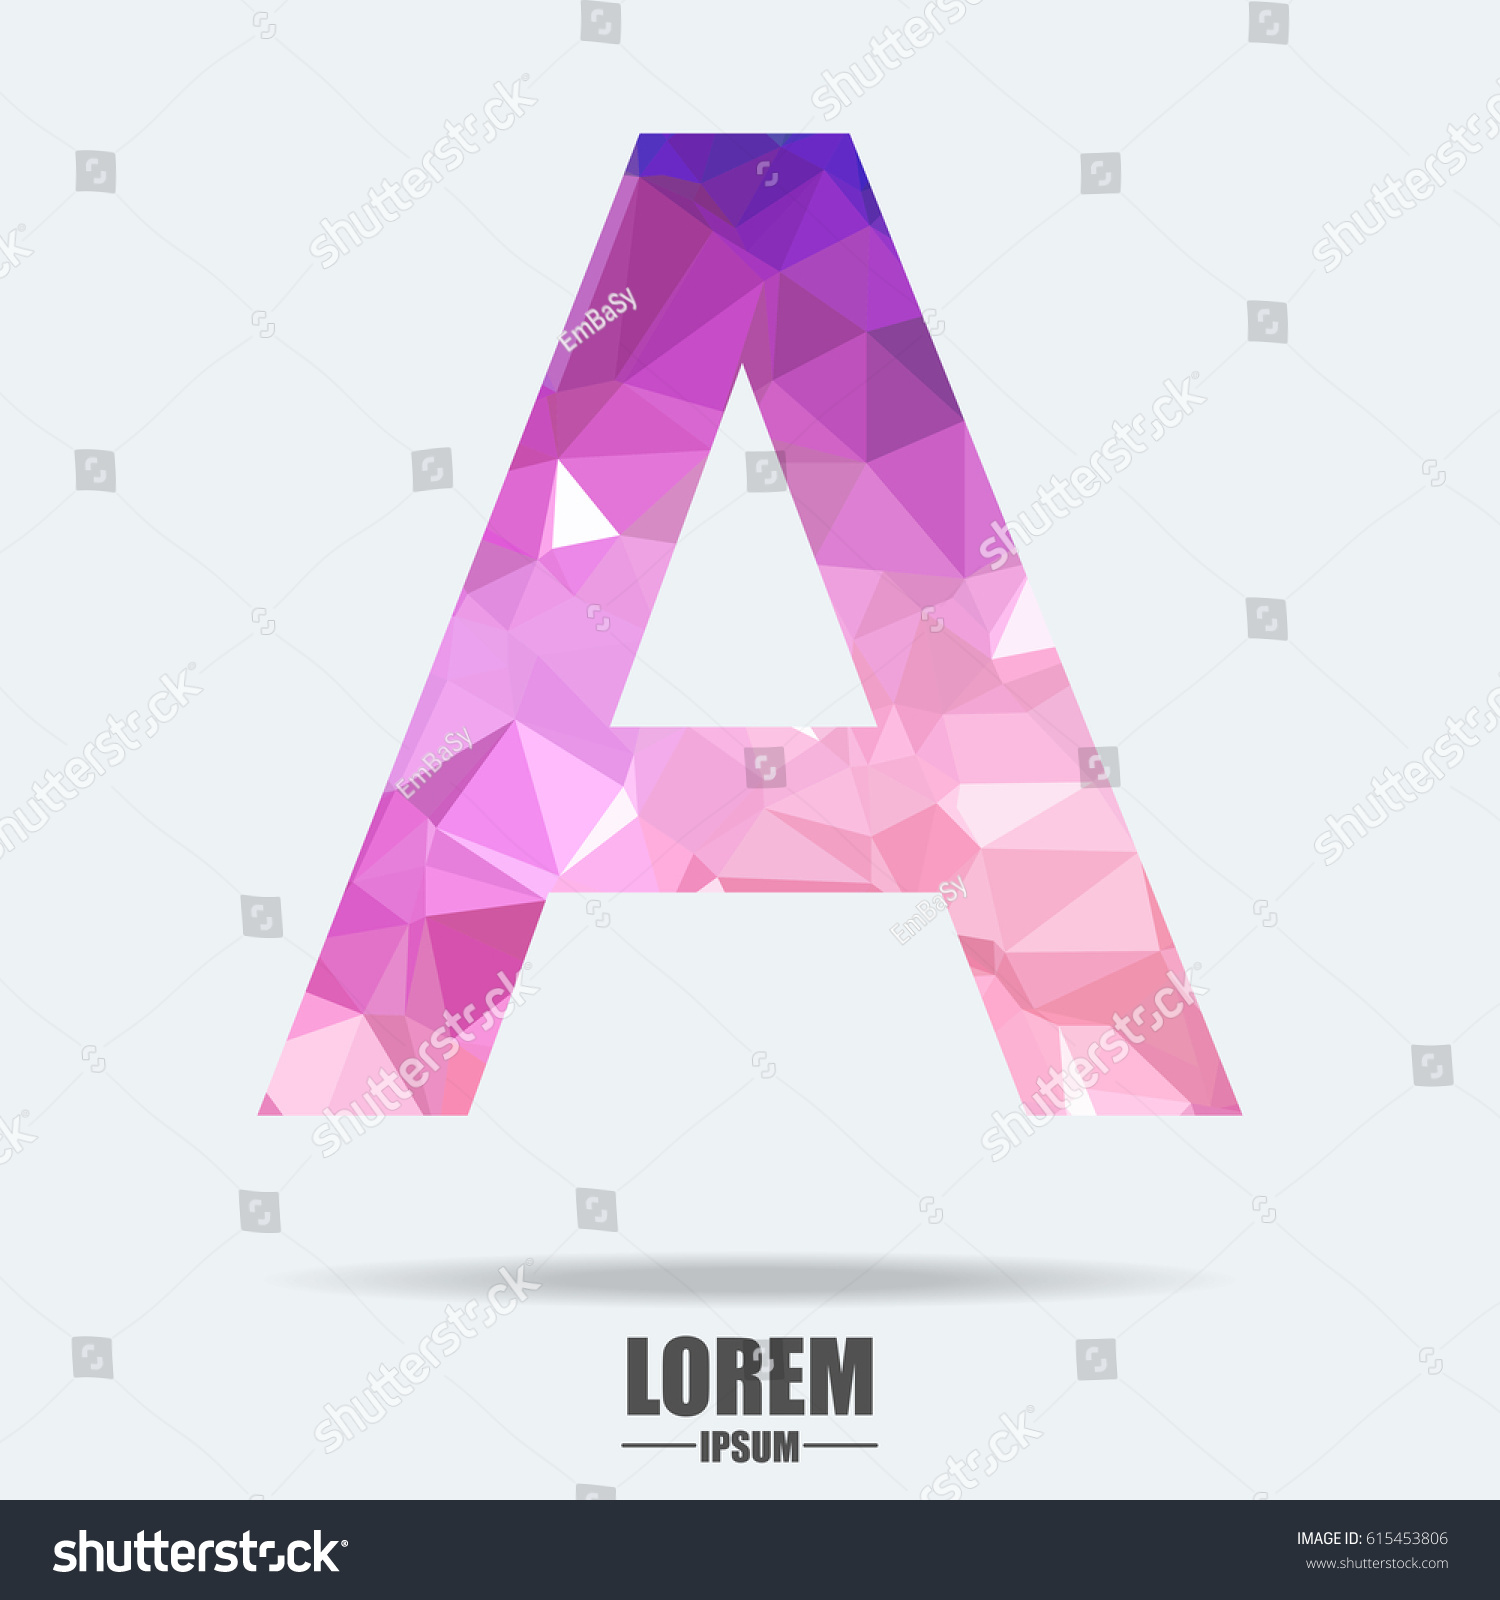 Abstract Trend Polygon Letter Logo Design Stock Vector (Royalty Free ...